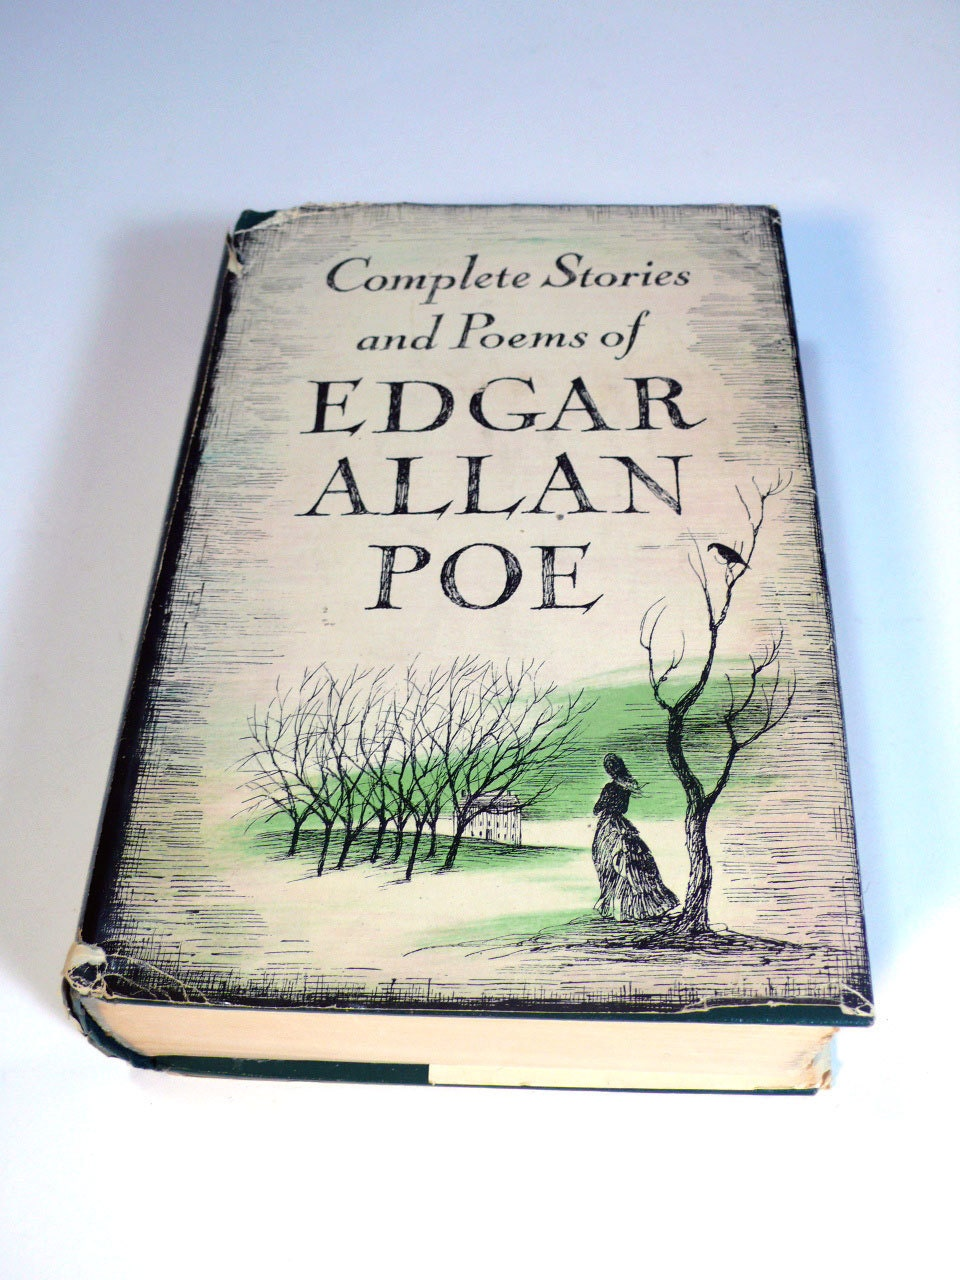 edgar allan poe research papers Essays and criticisms research (if you are working on a paper about edgar allan poe or his works, please read this) due to the overwhelming requests by students doing essays and term papers, i thought i'd better set the record straight on how to do research à la usher.